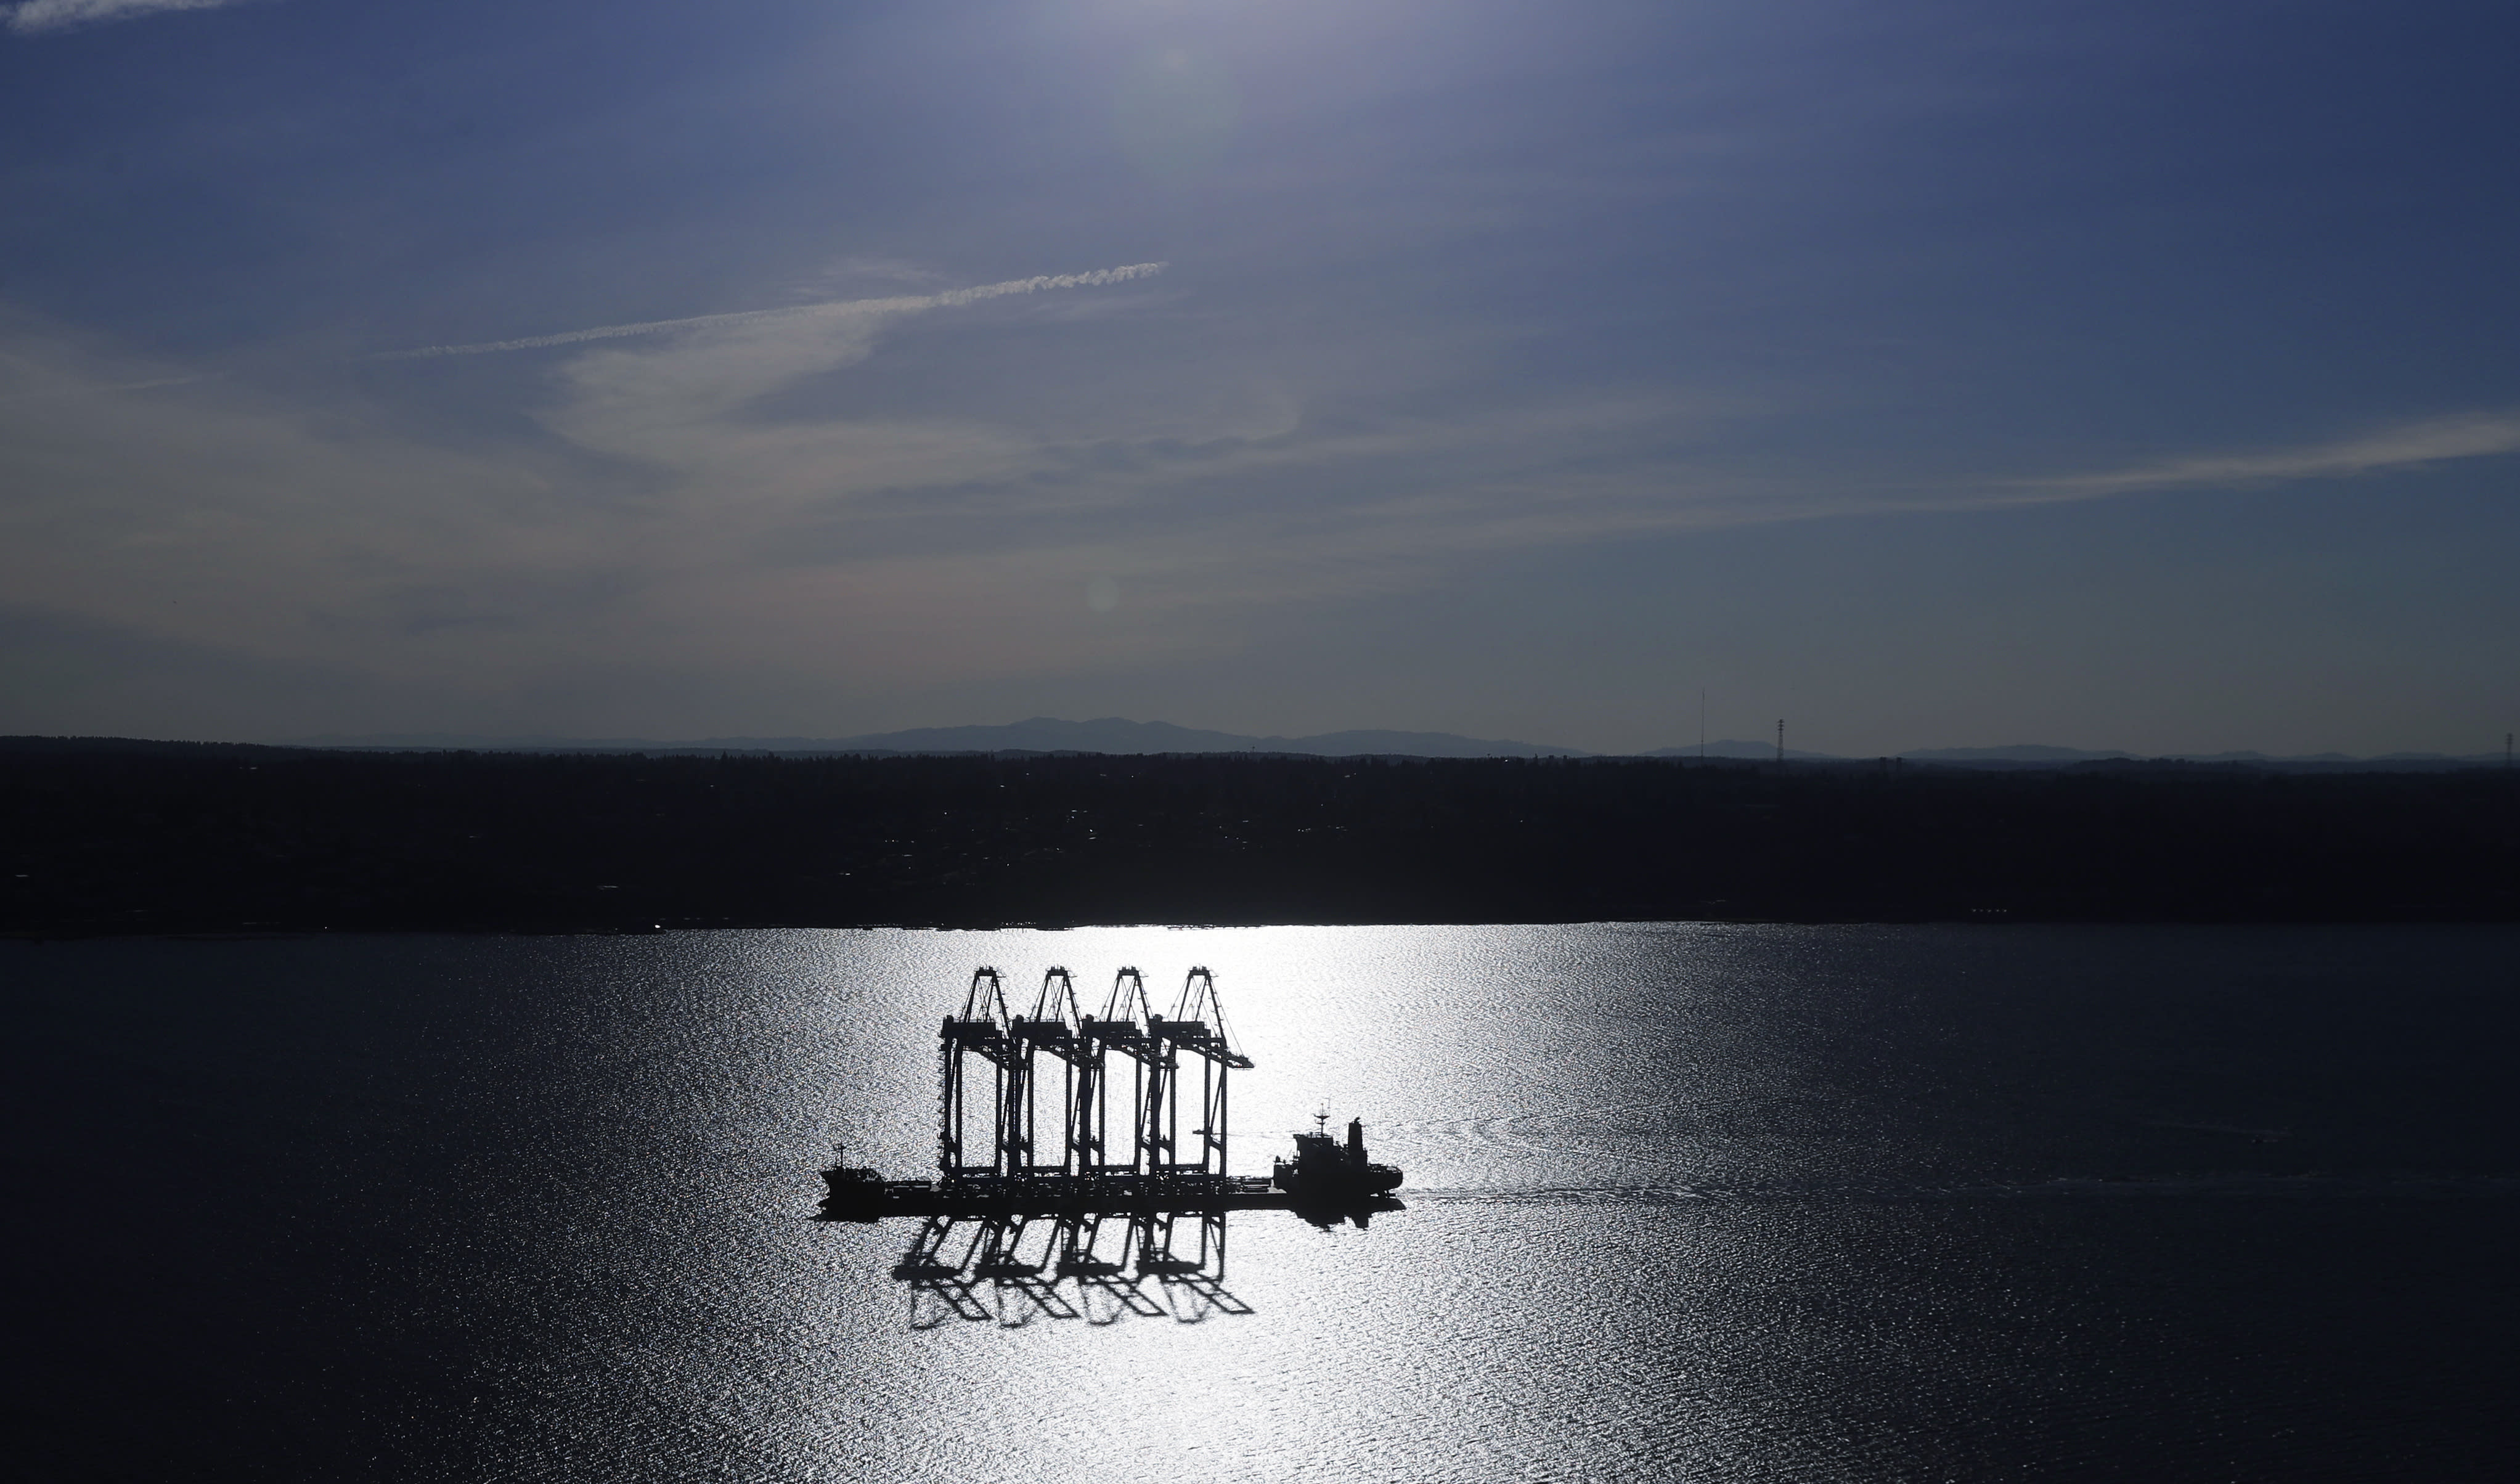 FILE - In this March 5, 2019, file photo the Zhen Hua 31 heavy-lift ship carrying four super-post-Panamax container cranes is silhouetted by the sun as it sails into Commencement Bay in Tacoma, Wash. Most economists were already worried that the odds of a recession are rising, and most of the worries stem from the U.S.-China trade war. (AP Photo/Ted S. Warren, File)